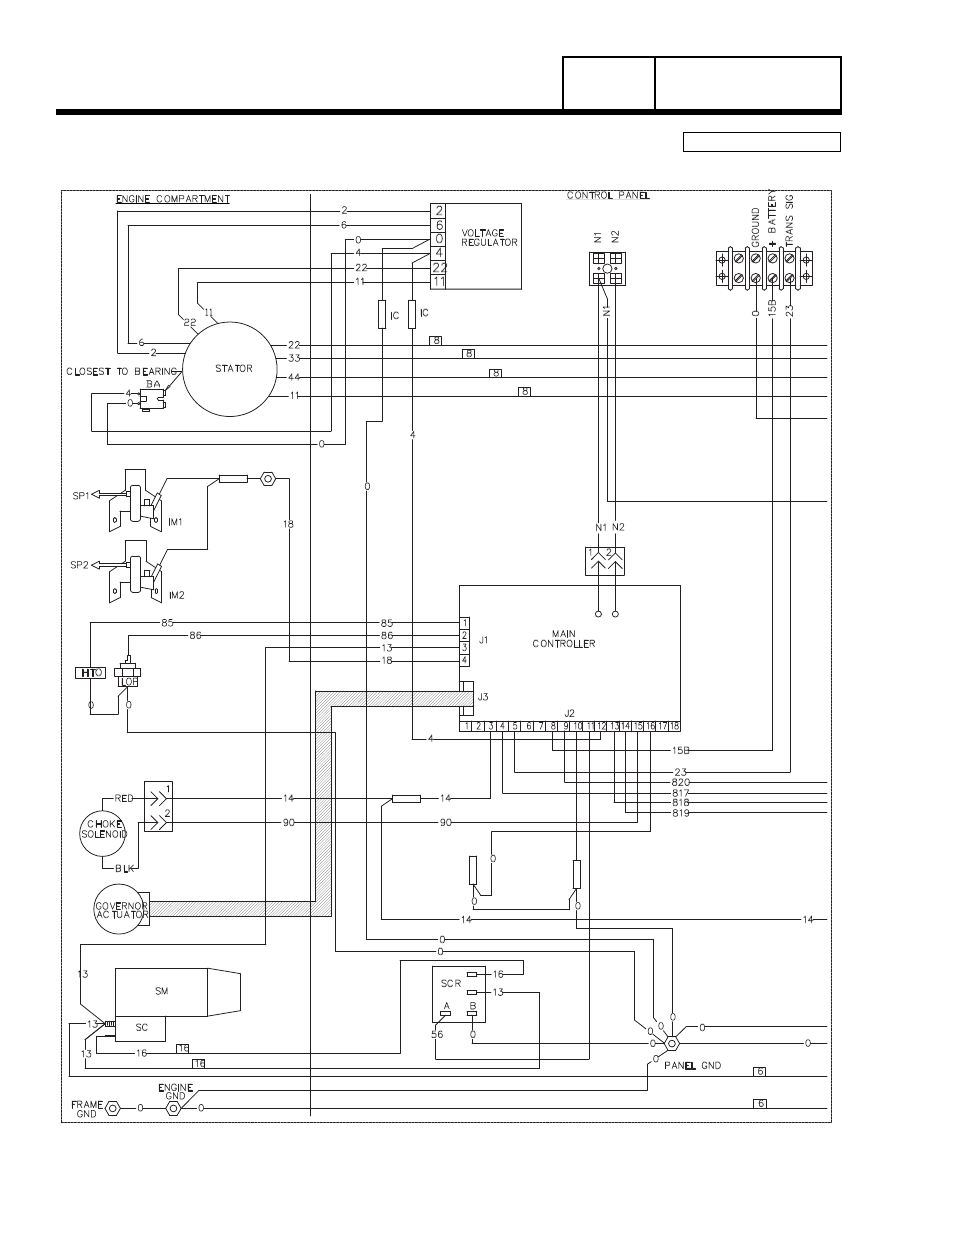 Generac Remote Start Wiring Diagrams Diagram Will Be A Thing Gp5500 Generator 120 208v Standby